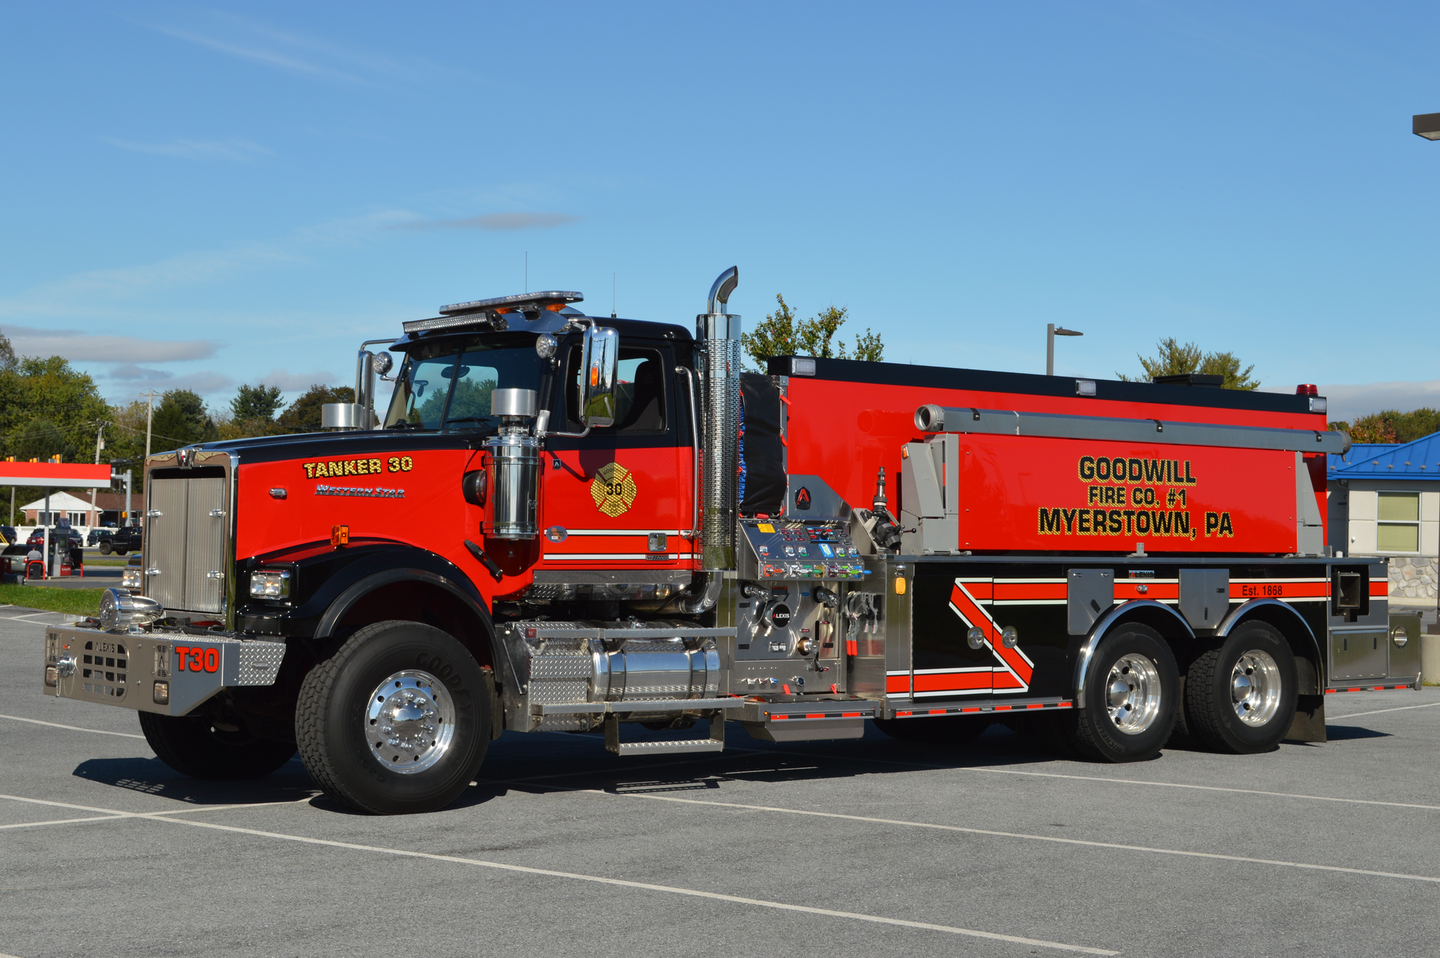 The commercial chassis market depends on platforms that are designed as base models and that have numerous pre-engineered options that can be utilized to meet the customer's needs. The Goodwill Fire Company (Myerstown, PA) specified a Western Star 4900SF tandem-axle chassis for their new tanker. This vehicle is equipped with rear and side quick-dumps.